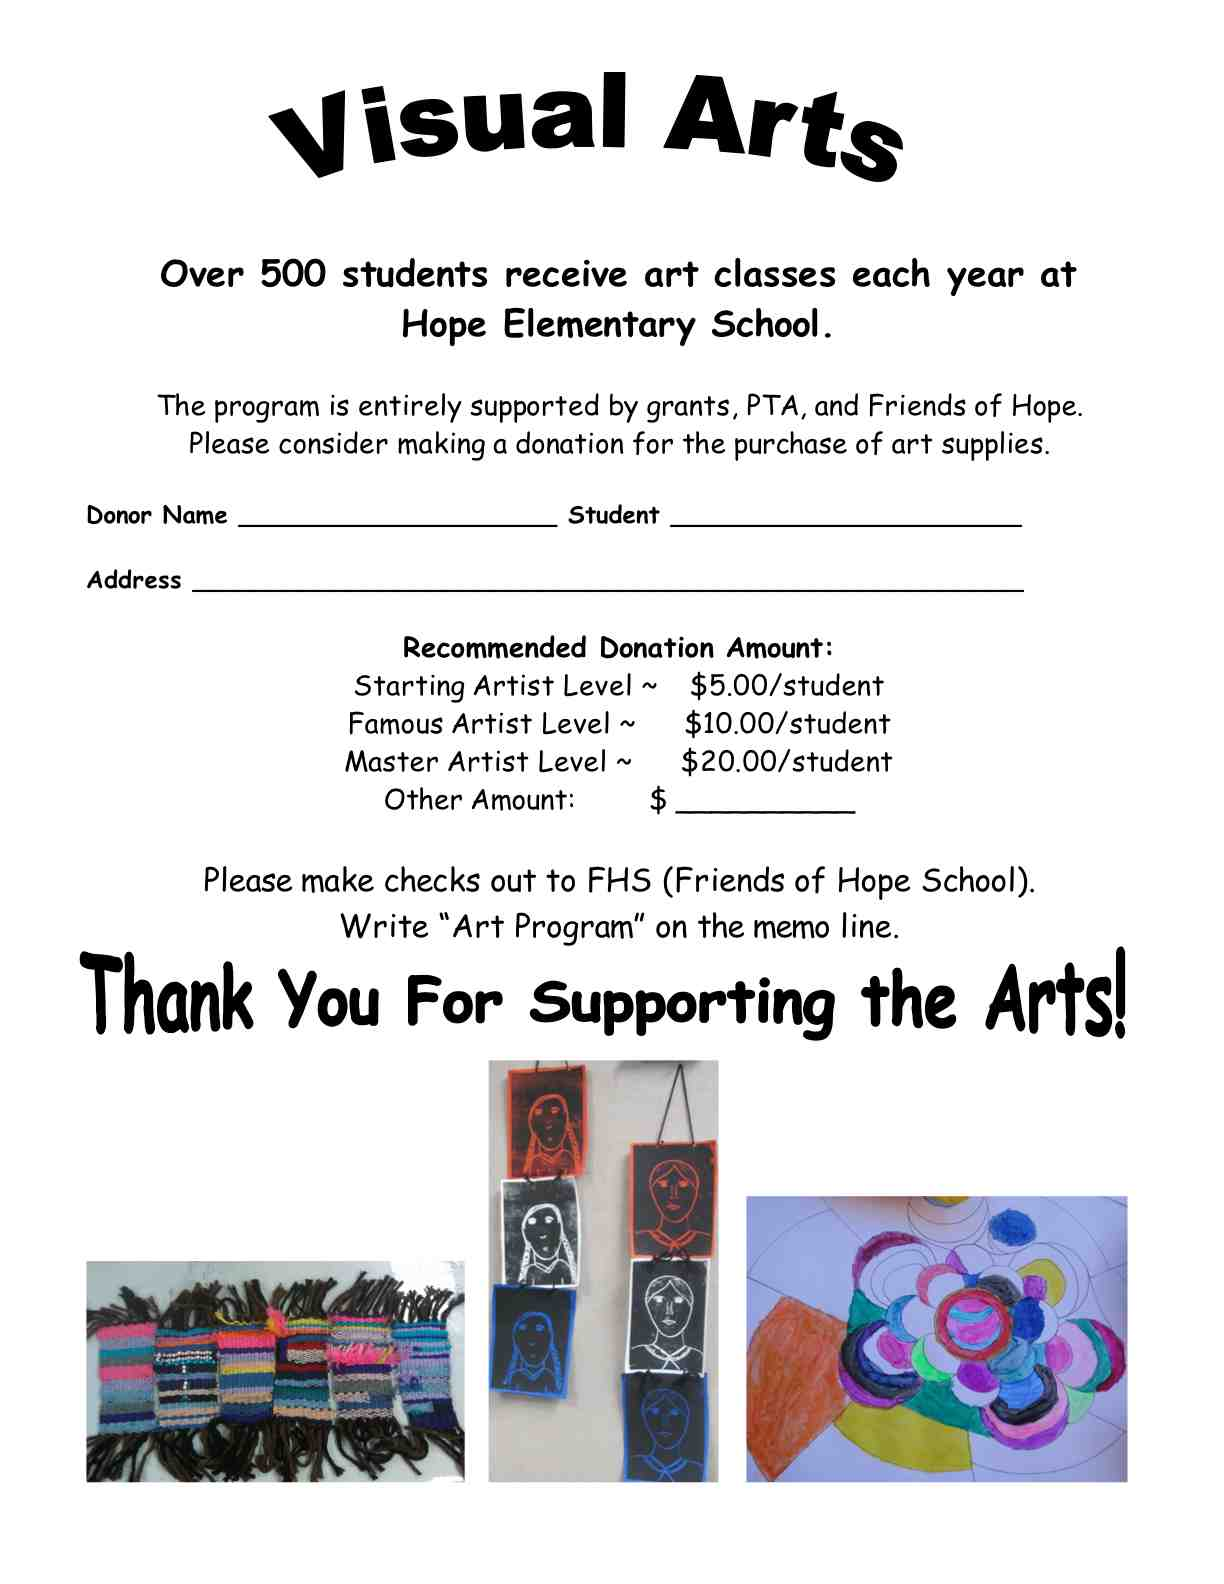 Over 500 students receive art classes each year at Hope Elementary School